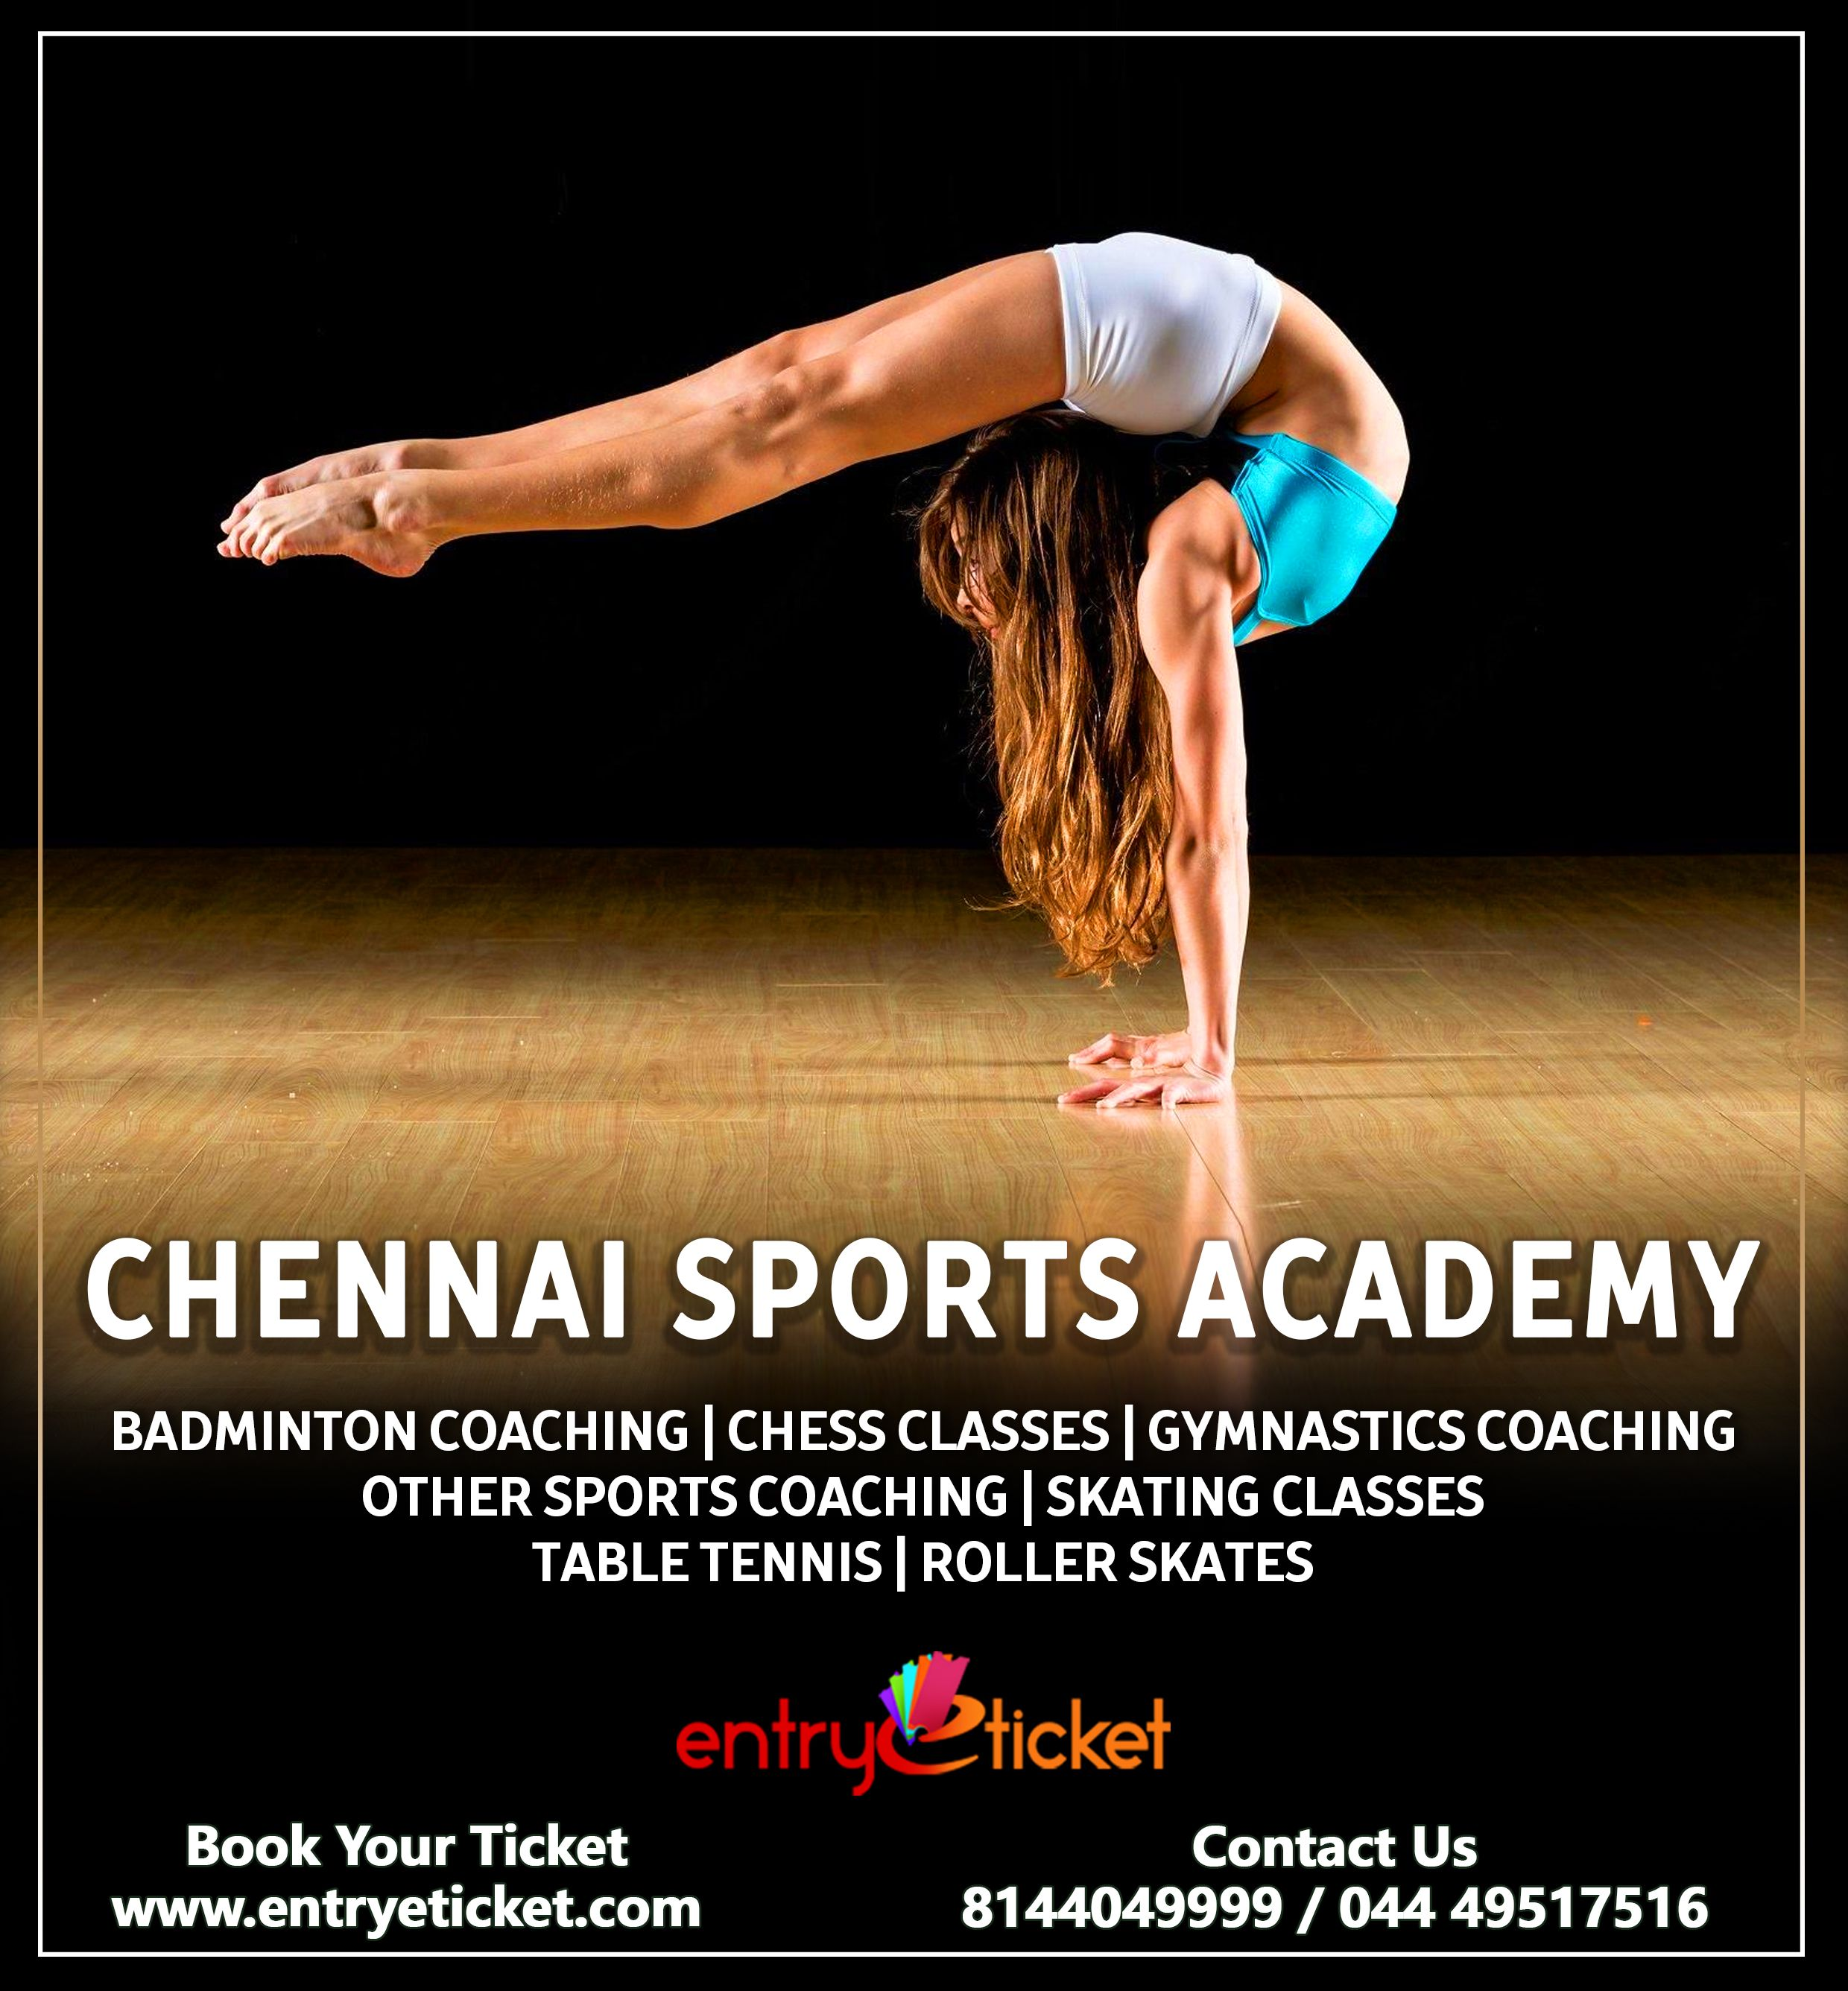 Registration Available Https Www Entryeticket Com Sports Chennai Sports Academy Sports Entryeticket Che Gymnastics Coaching Sports Coach Boxing Coach